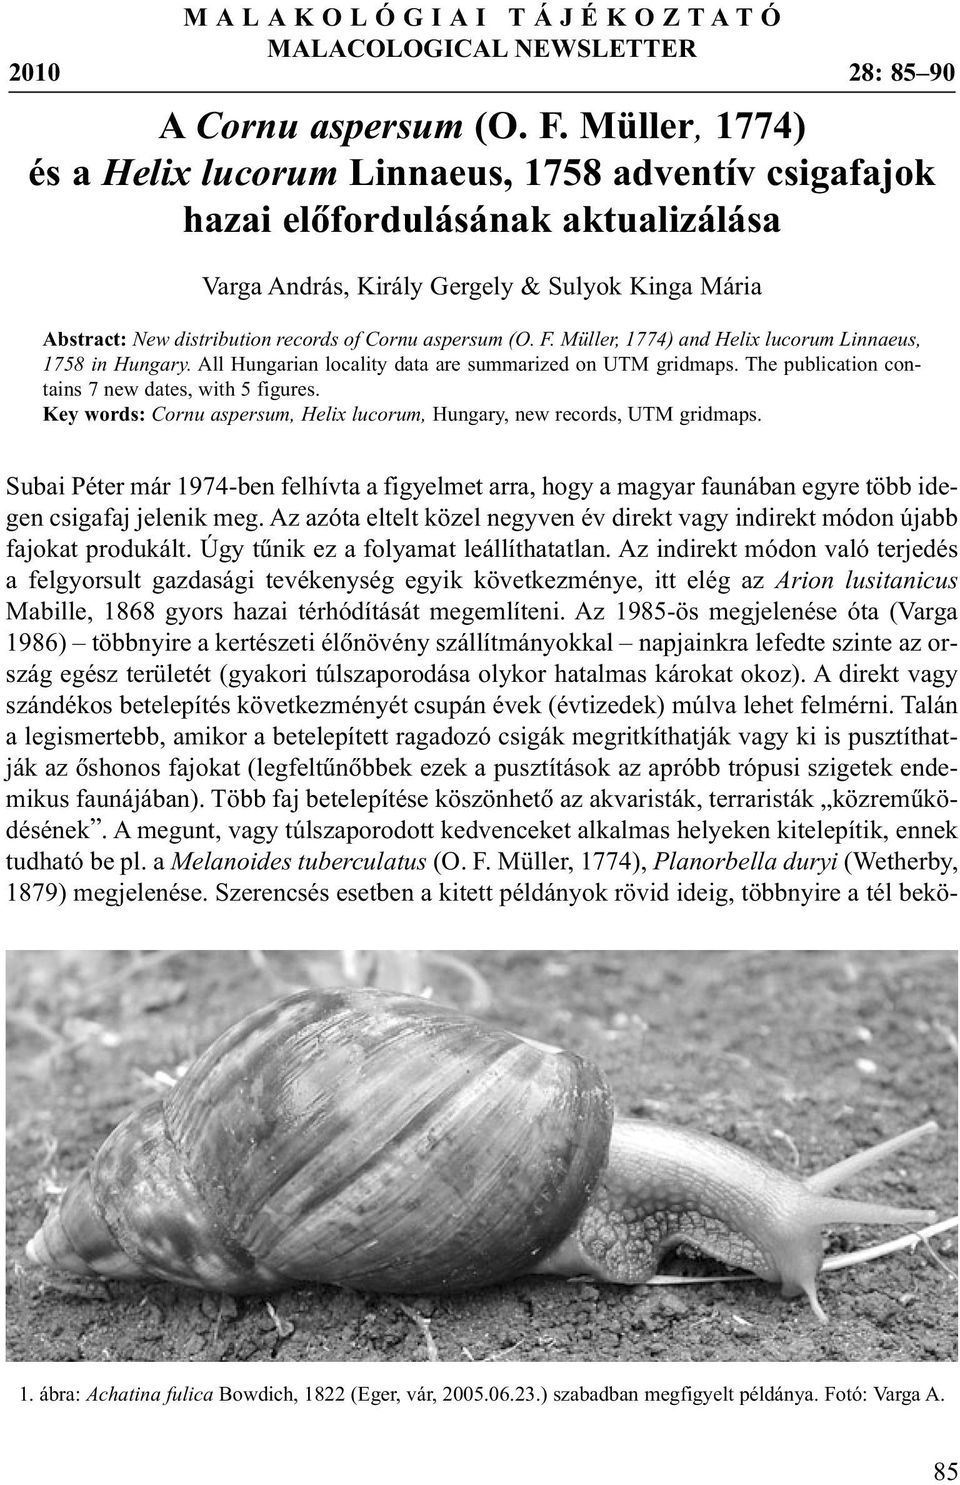 aspersum (O. F. Müller, 1774) and Helix lucorum Linnaeus, 1758 in Hungary. All Hungarian locality data are summarized on UTM gridmaps. The publication contains 7 new dates, with 5 figures.